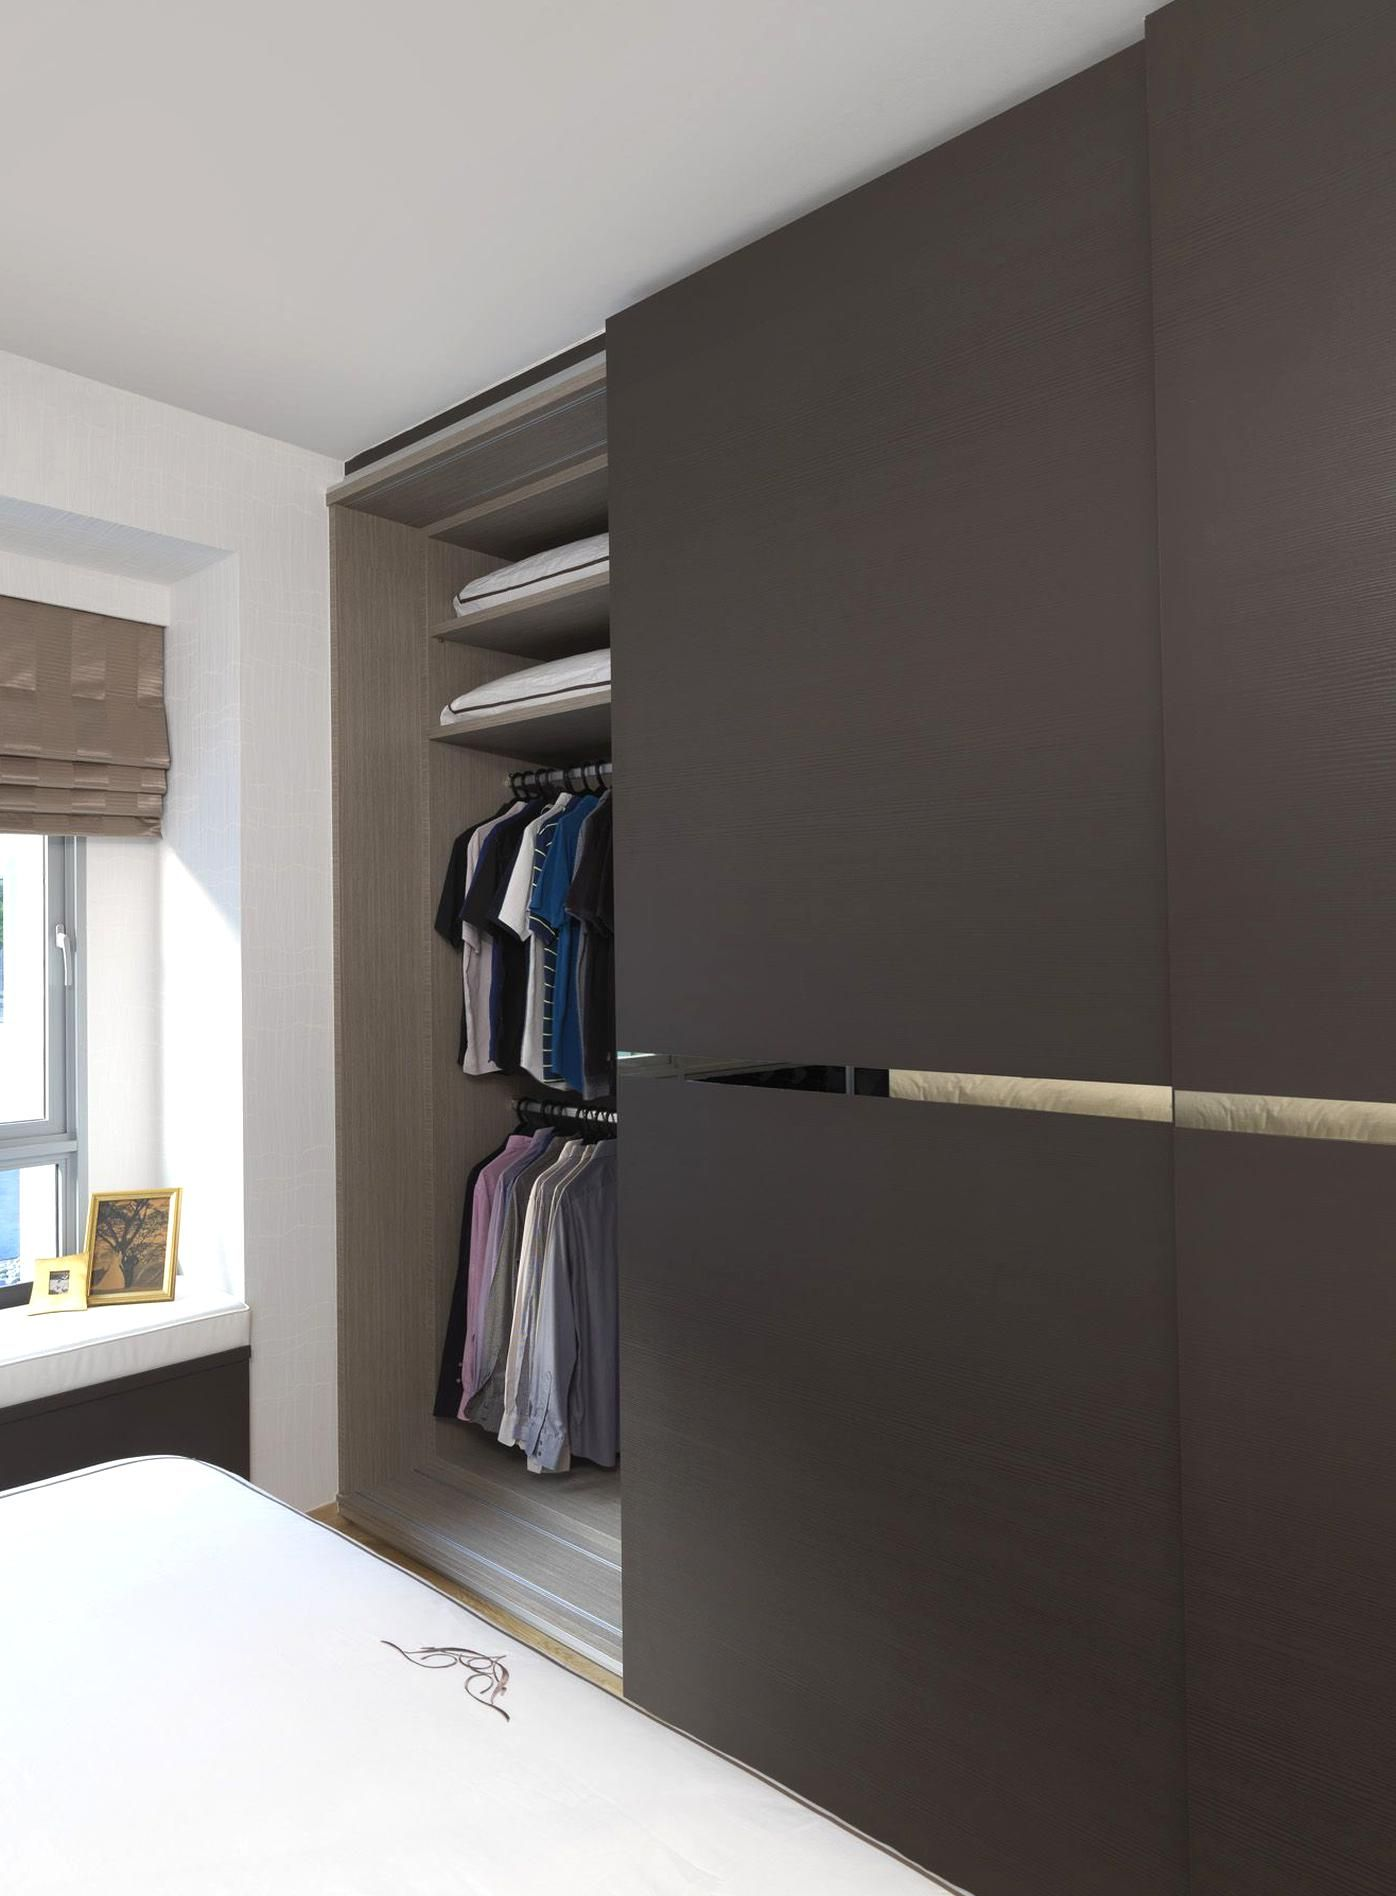 Pin By Cailyn Gwendolen On My Beautiful Collections Sliding Door Wardrobe Designs Sliding Wardrobe Designs Wardrobe Design